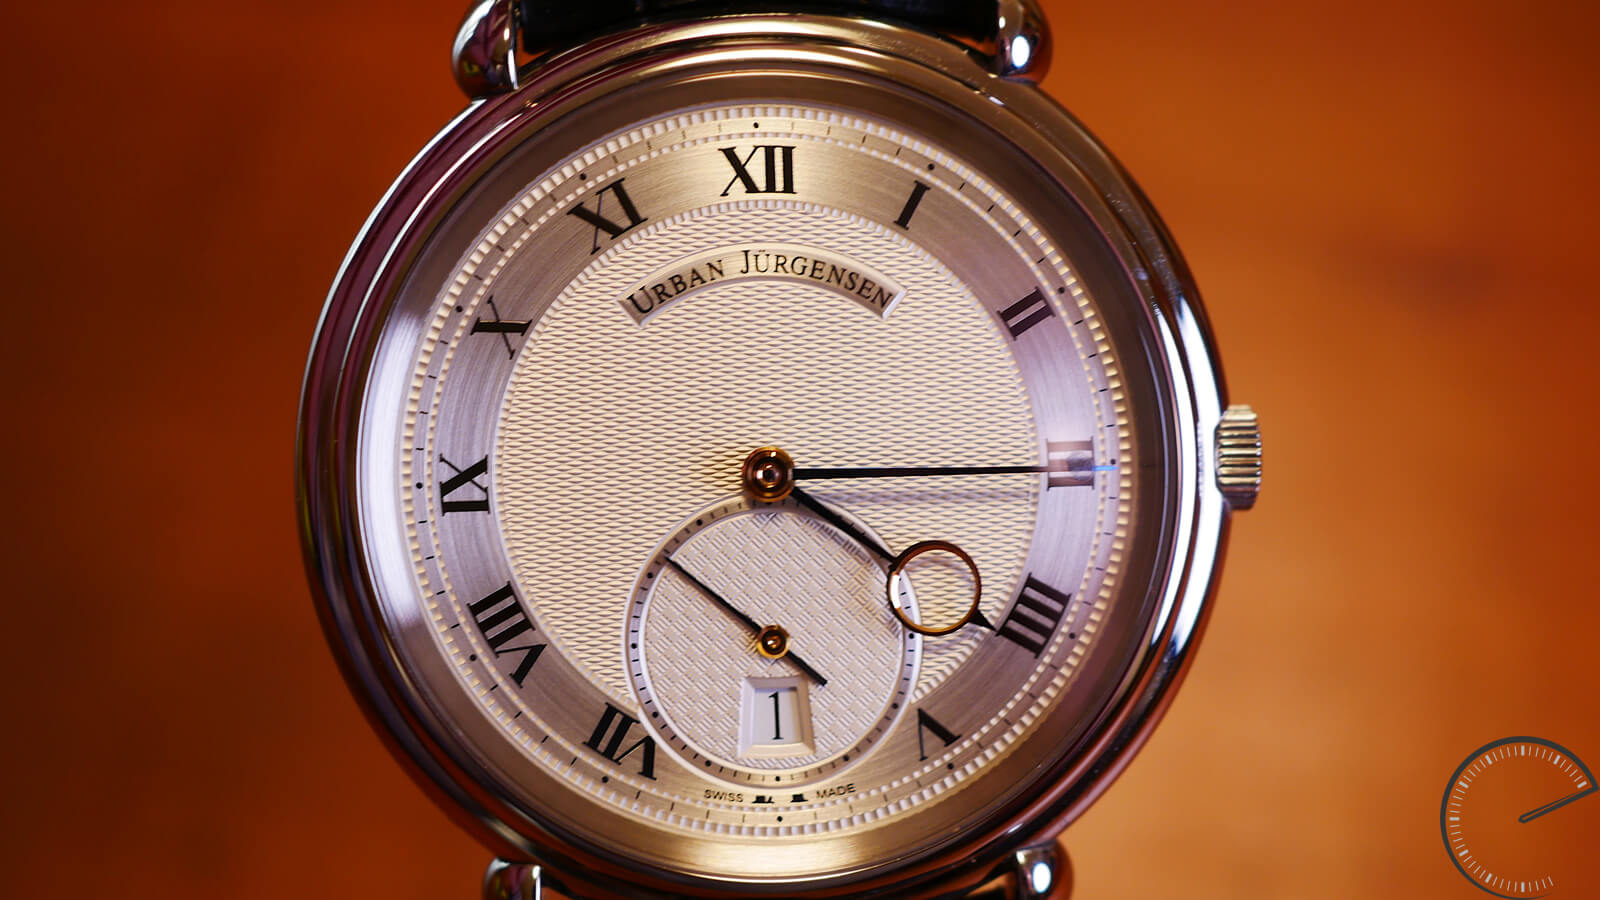 Urban Jurgensen Reference Big 8 Stainless Steel - timepiece with guilloche dial and small seconds